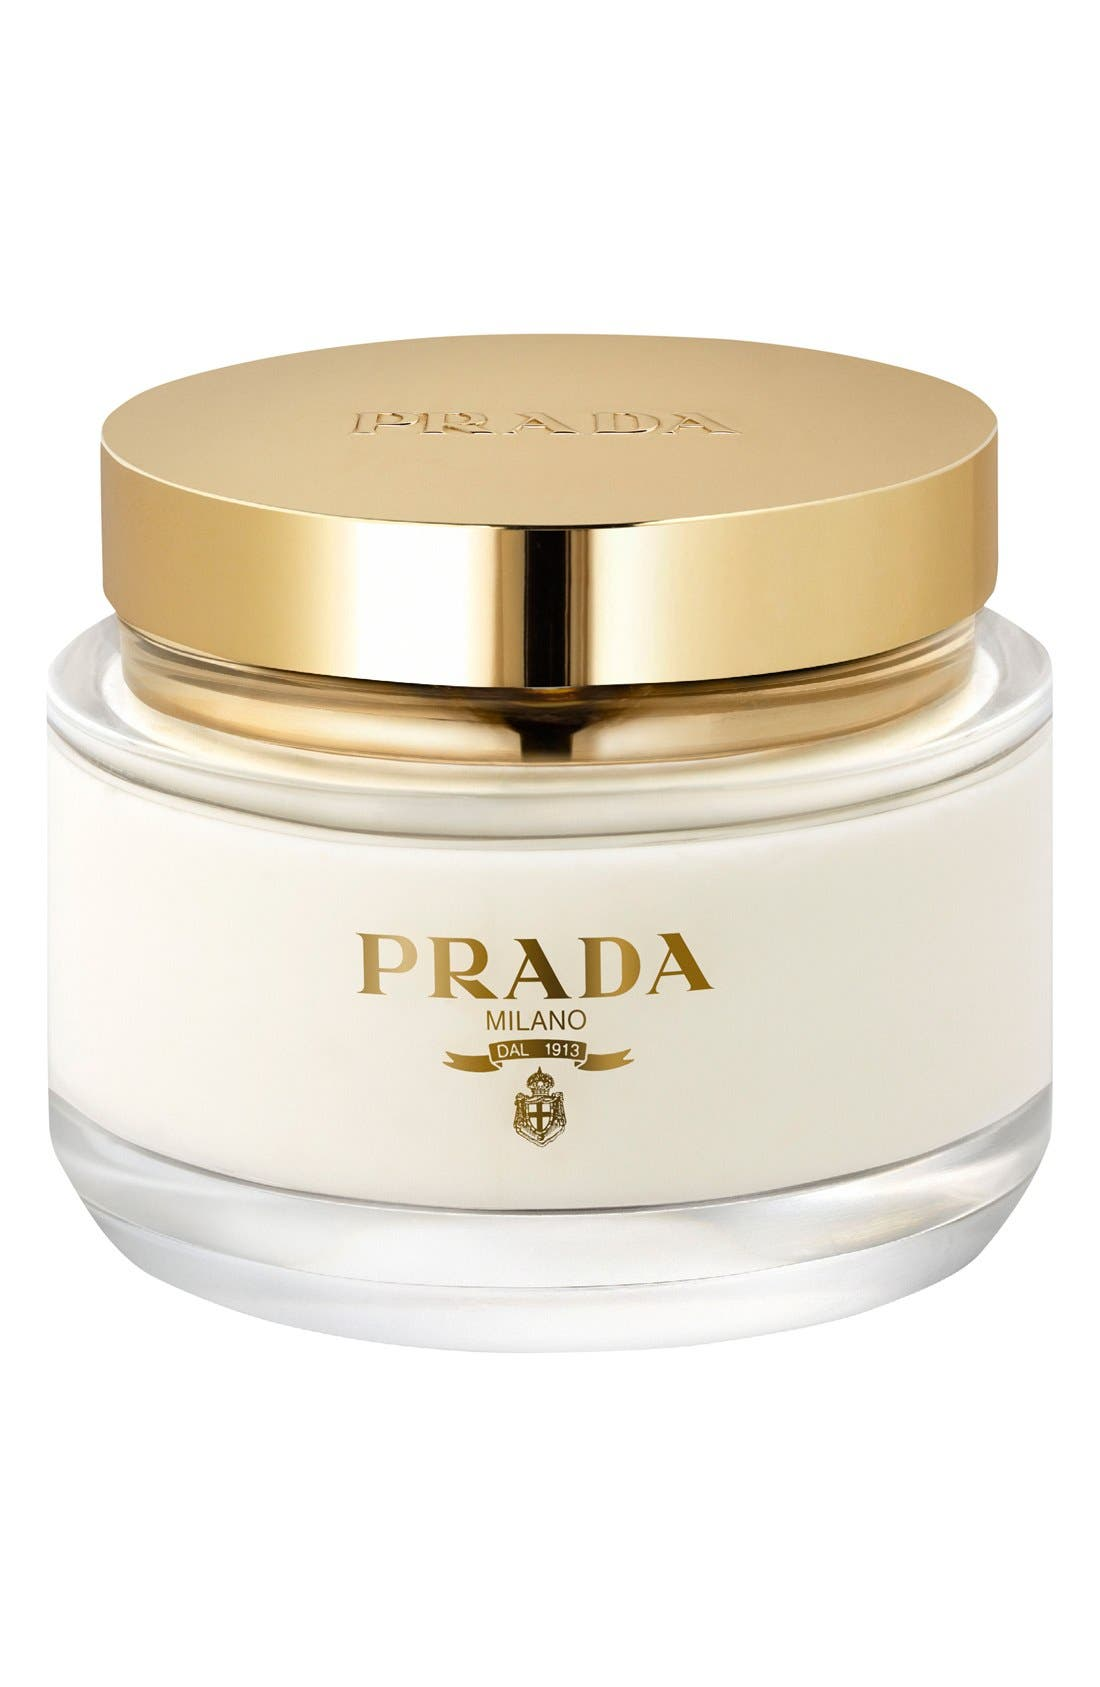 PRADA,                             'La Femme Prada' Body Cream,                             Main thumbnail 1, color,                             NO COLOR